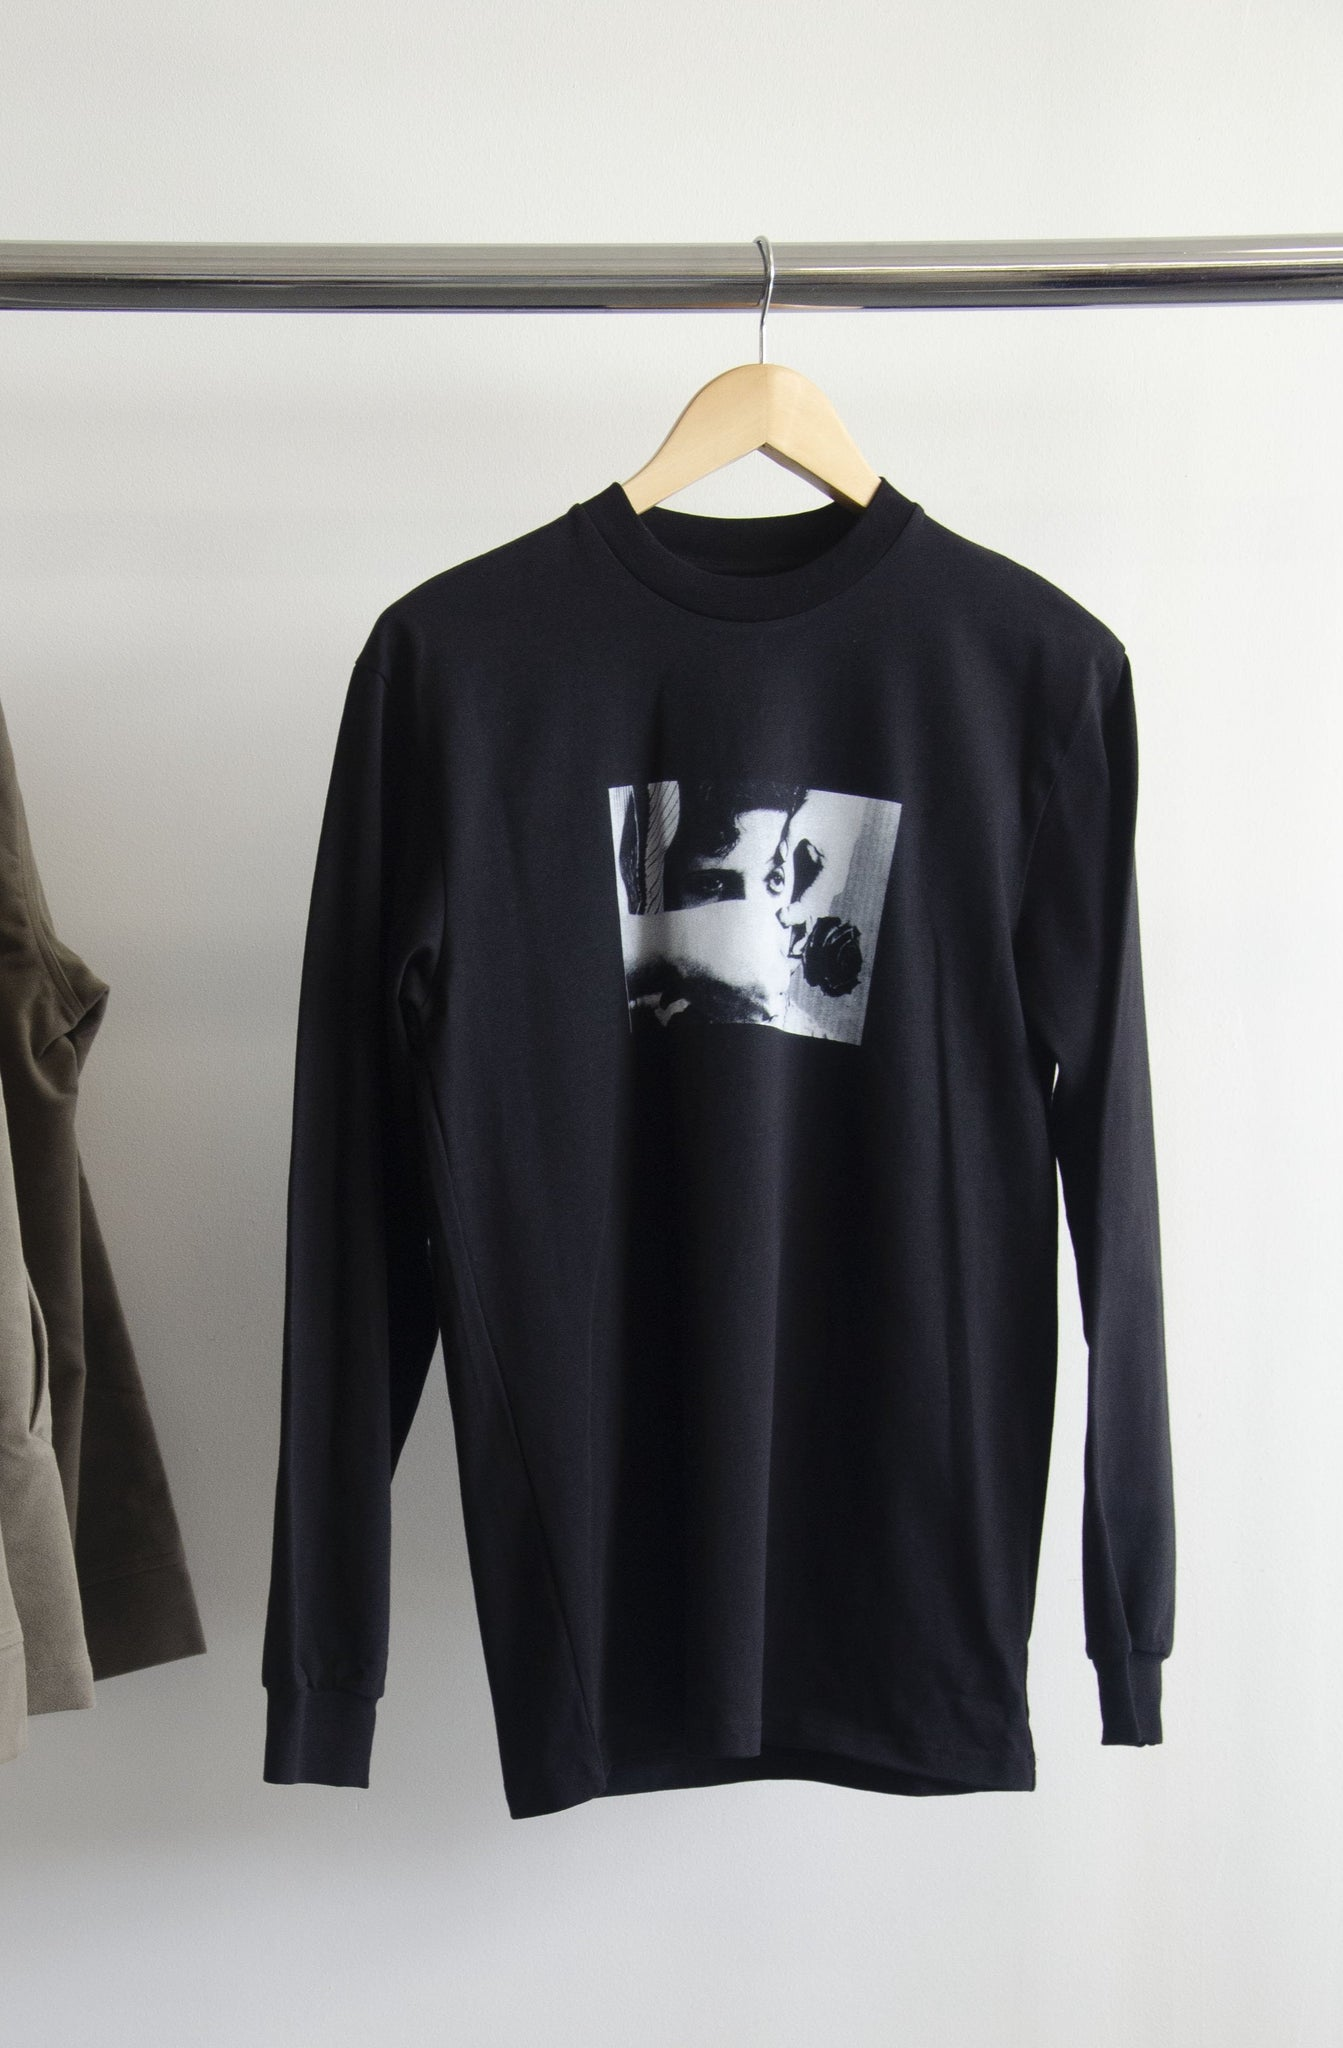 Rose Longsleeve Tee Black - SAMPLE - MEDIUM